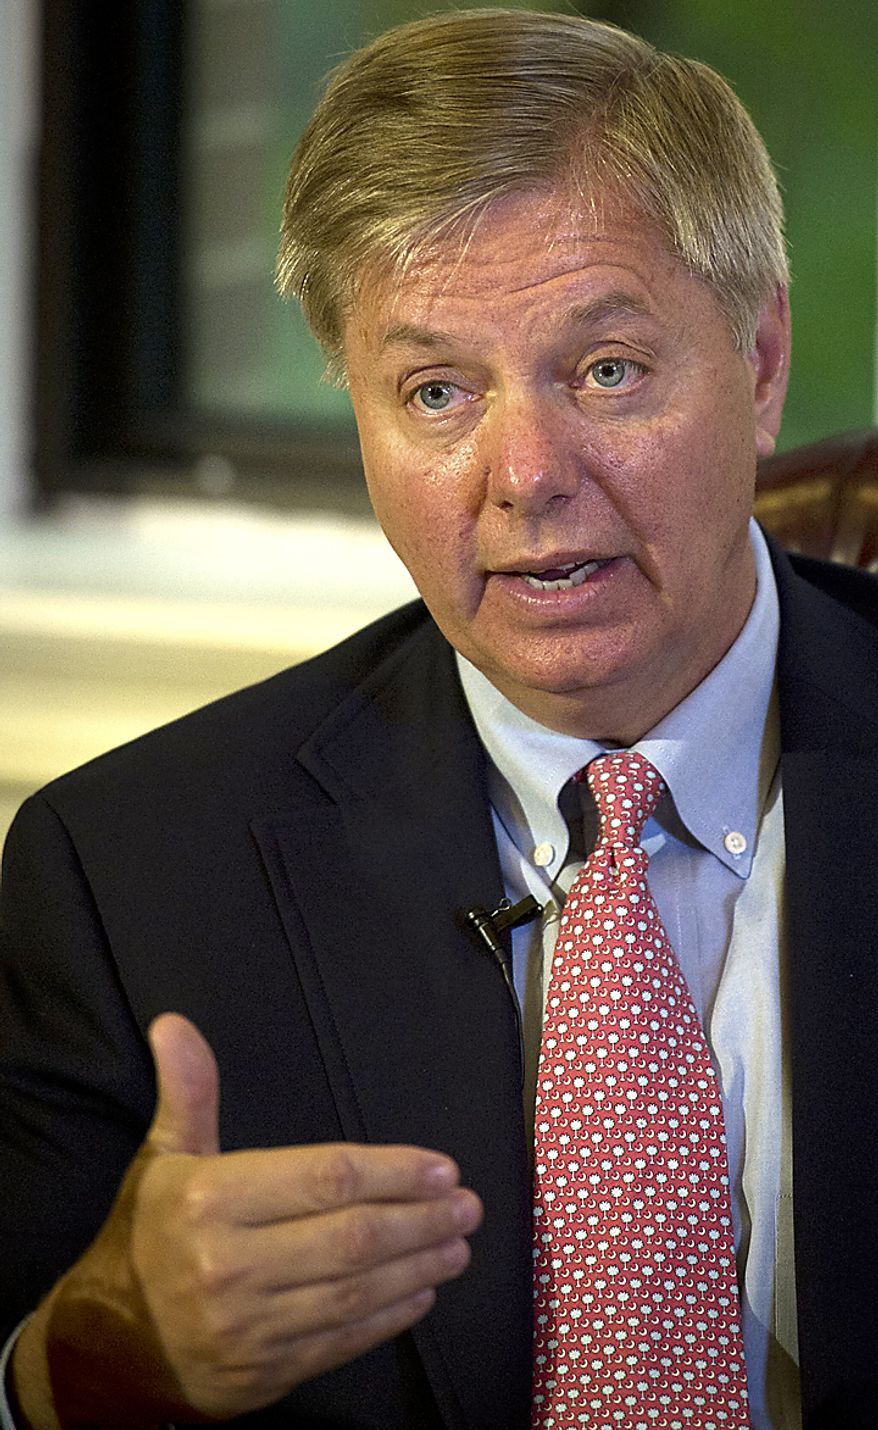 Sen. Lindsey Graham, South Carolina Republican, responds to questions and offers remarks during an interview in Washington, D.C., Wednesday, July 6, 2011. (Rod Lamkey Jr./The Washington Times)